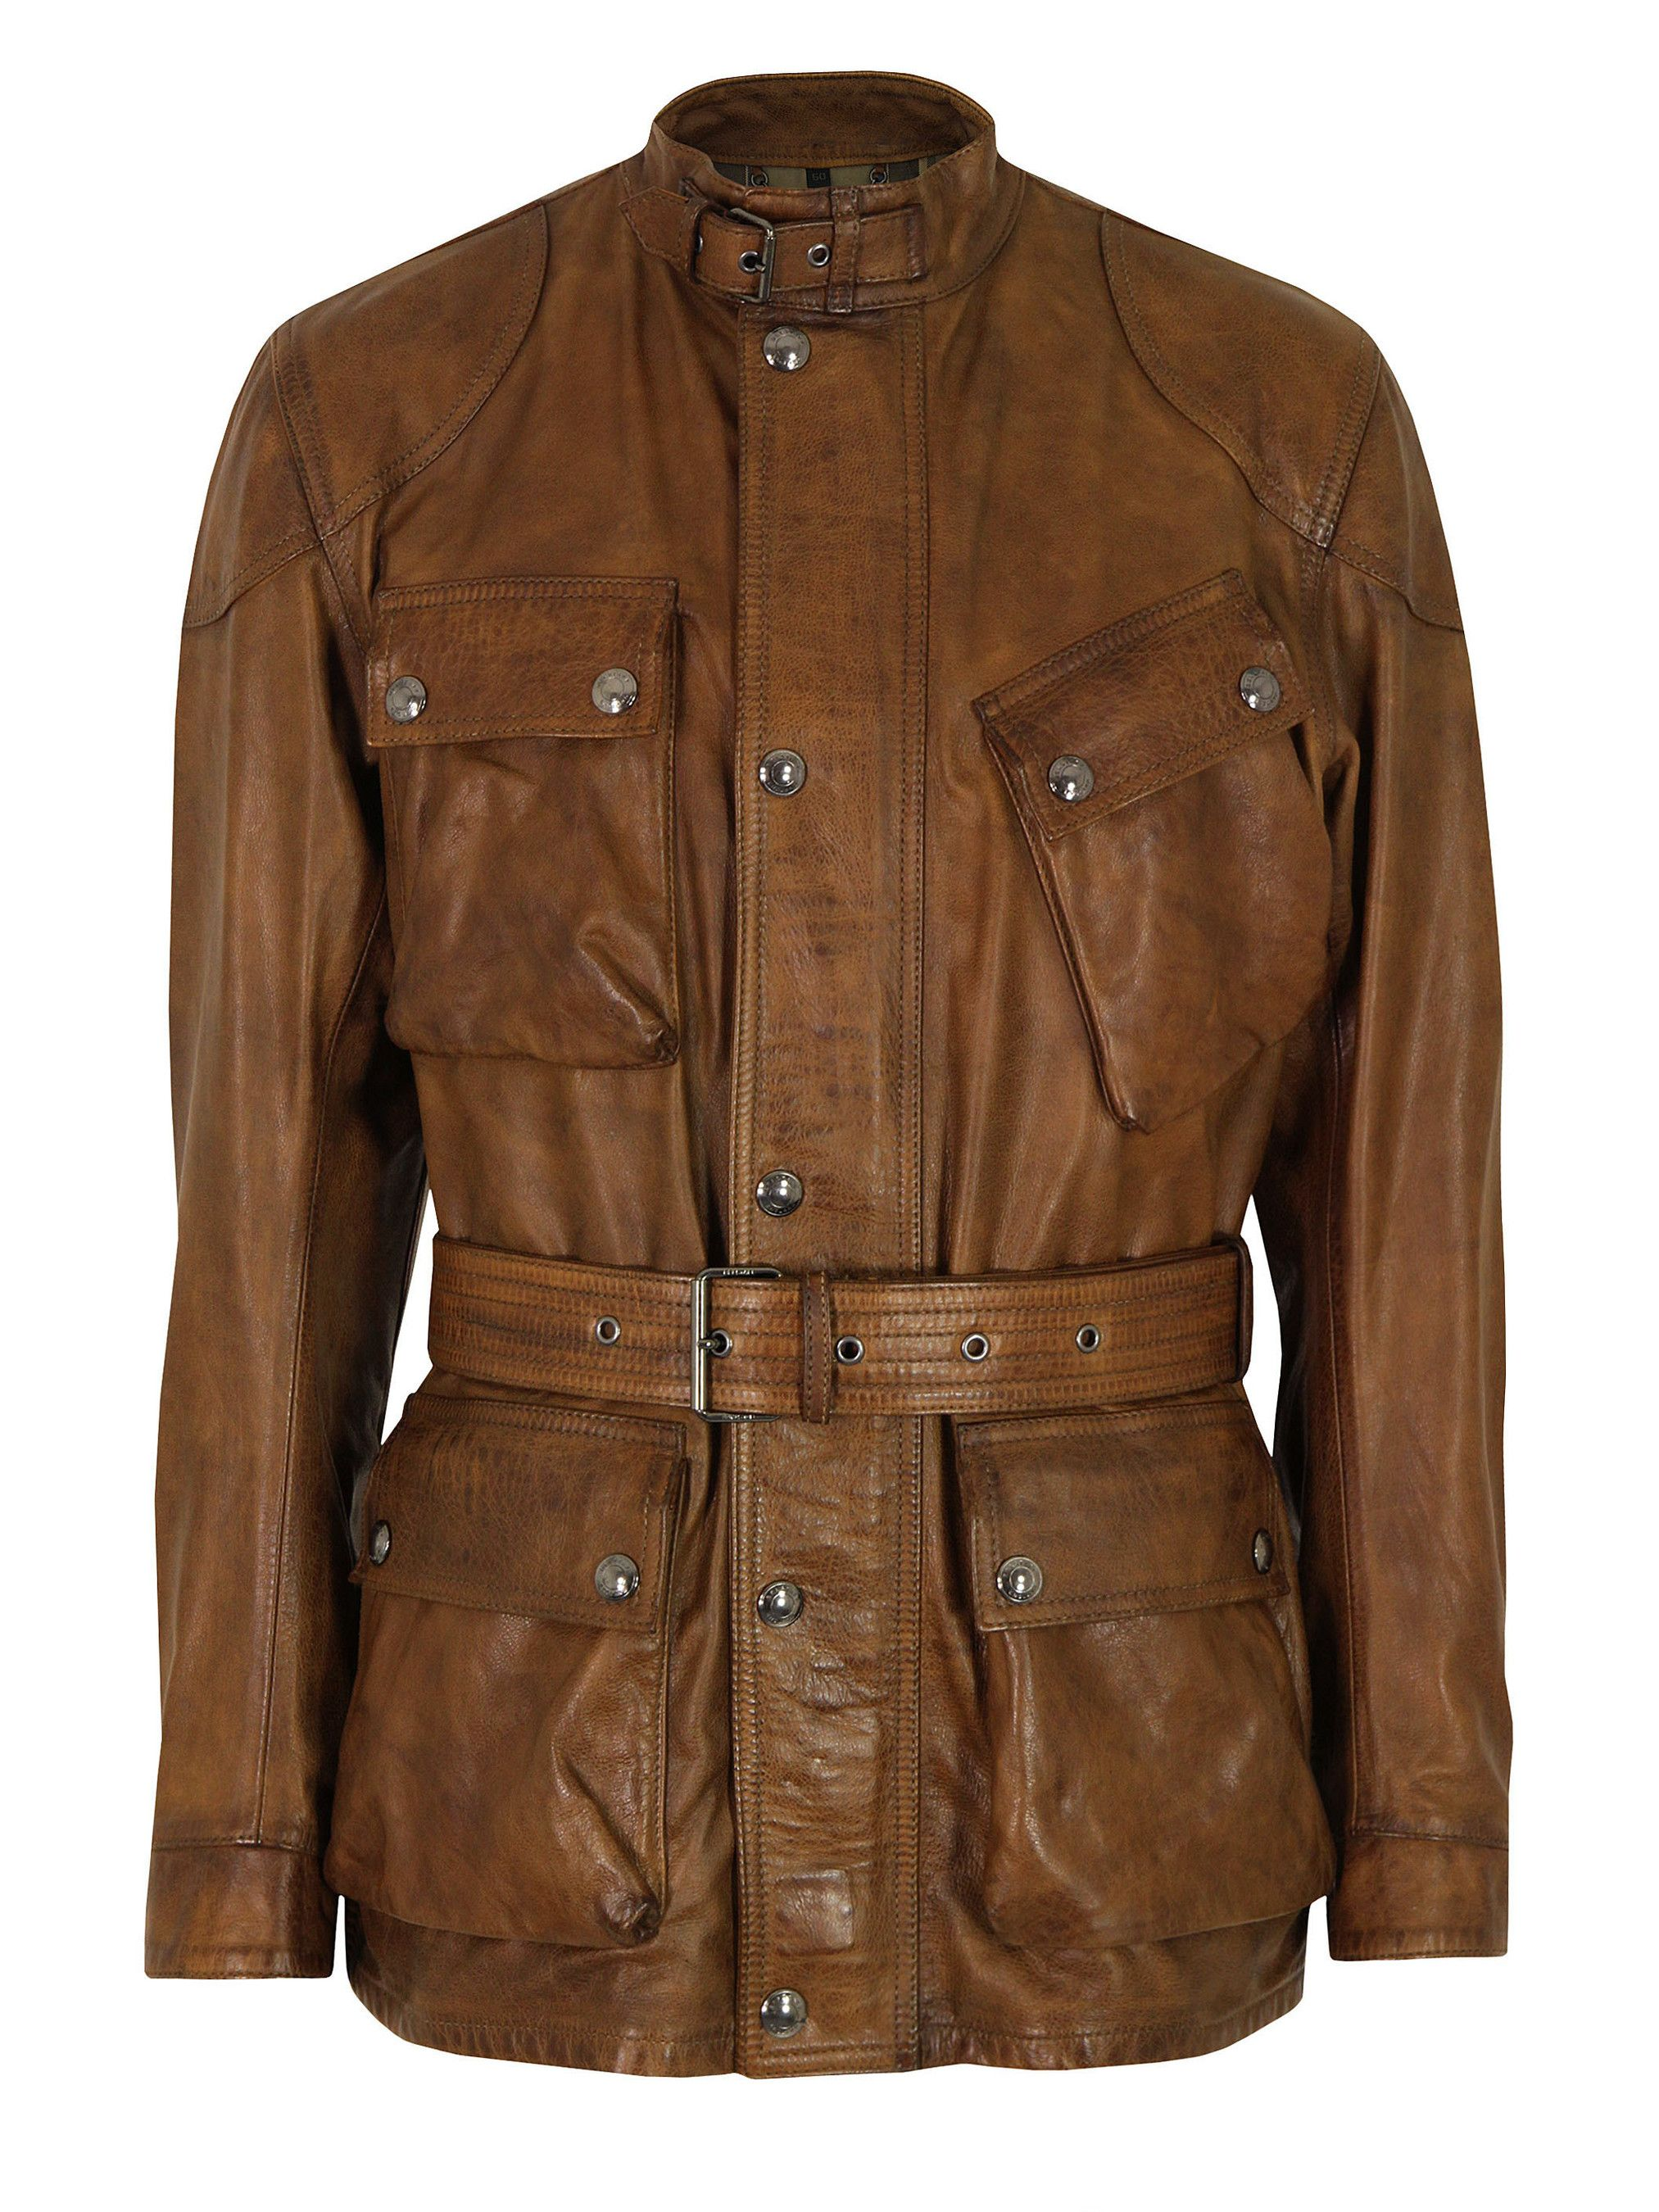 Panther Cognac Leather Jacket Belstaff Giacca In Pelle Panther